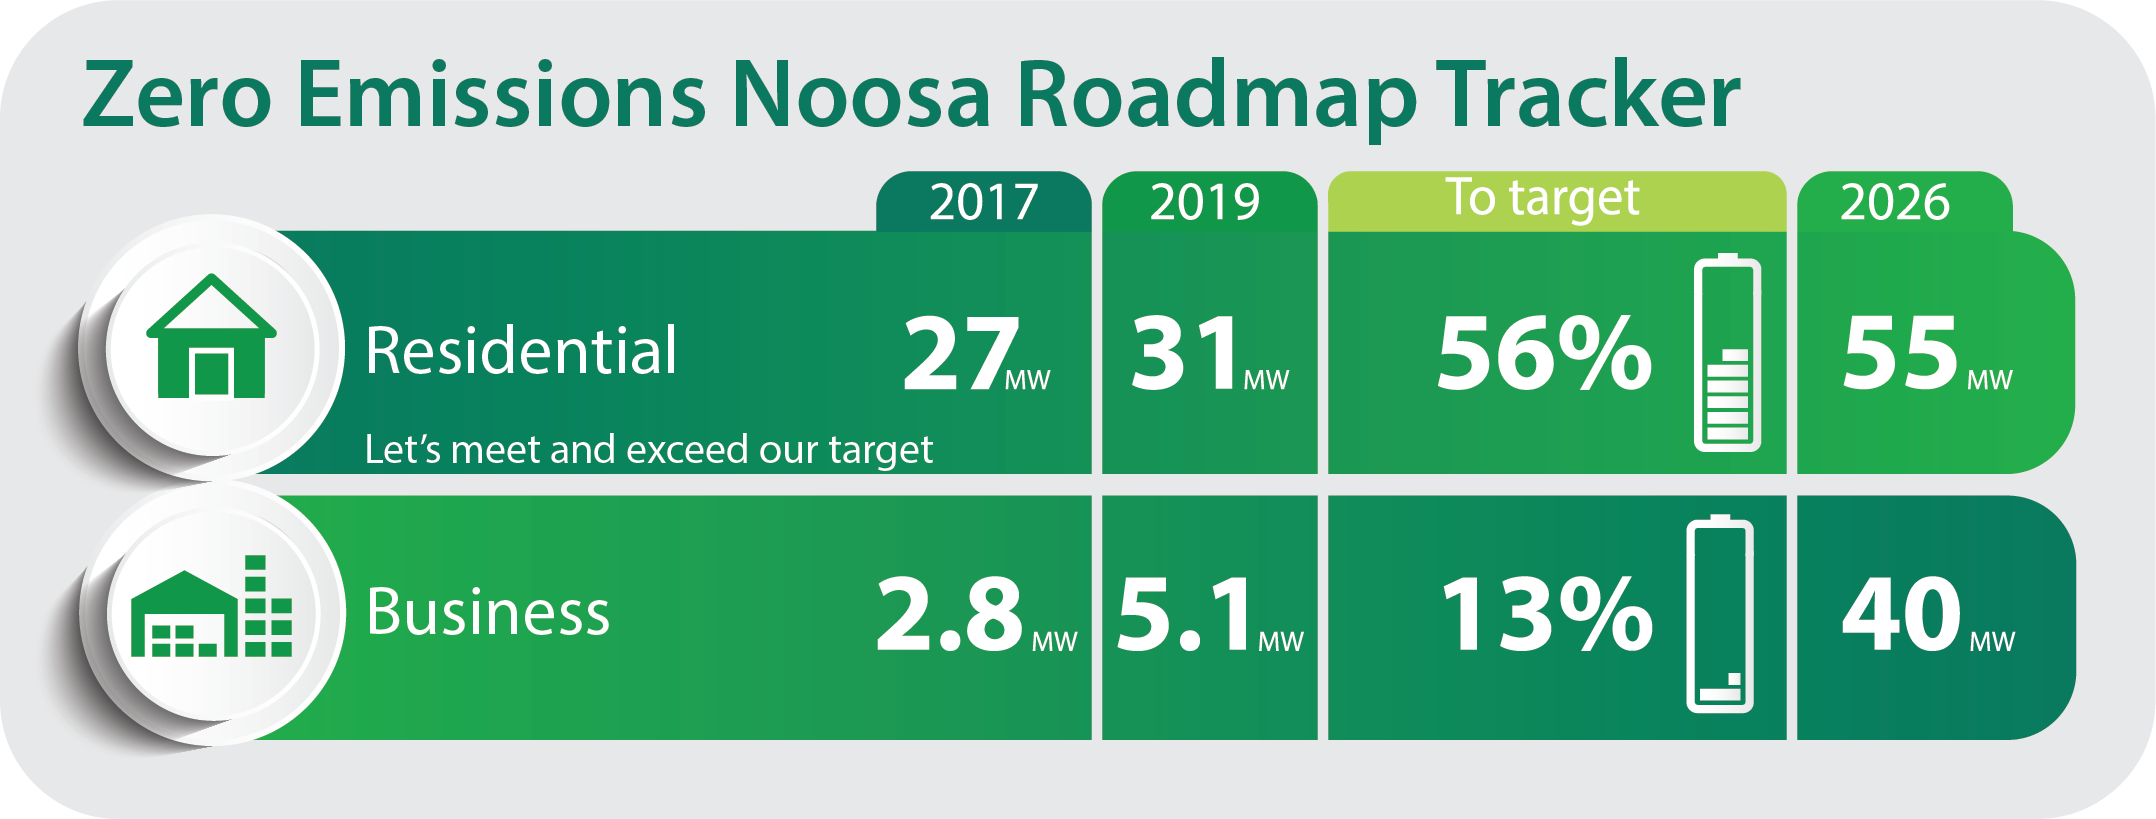 The Zero Emissions Noosa Roadmap tracker highlights the regions emission reductions against our Roadmap report. The first column shows our regions position at the time of the Roadmap report. The 2019 column shows our current position based on the latest data available from Energex and the Australian PV Institute. The to target column shows how we are tracking against the Roadmap report targets. The final column shows the predetermined targets from the Roadmap report.  Our next update will reflect the 2019 business take up of solar and emissions reduction strategies.